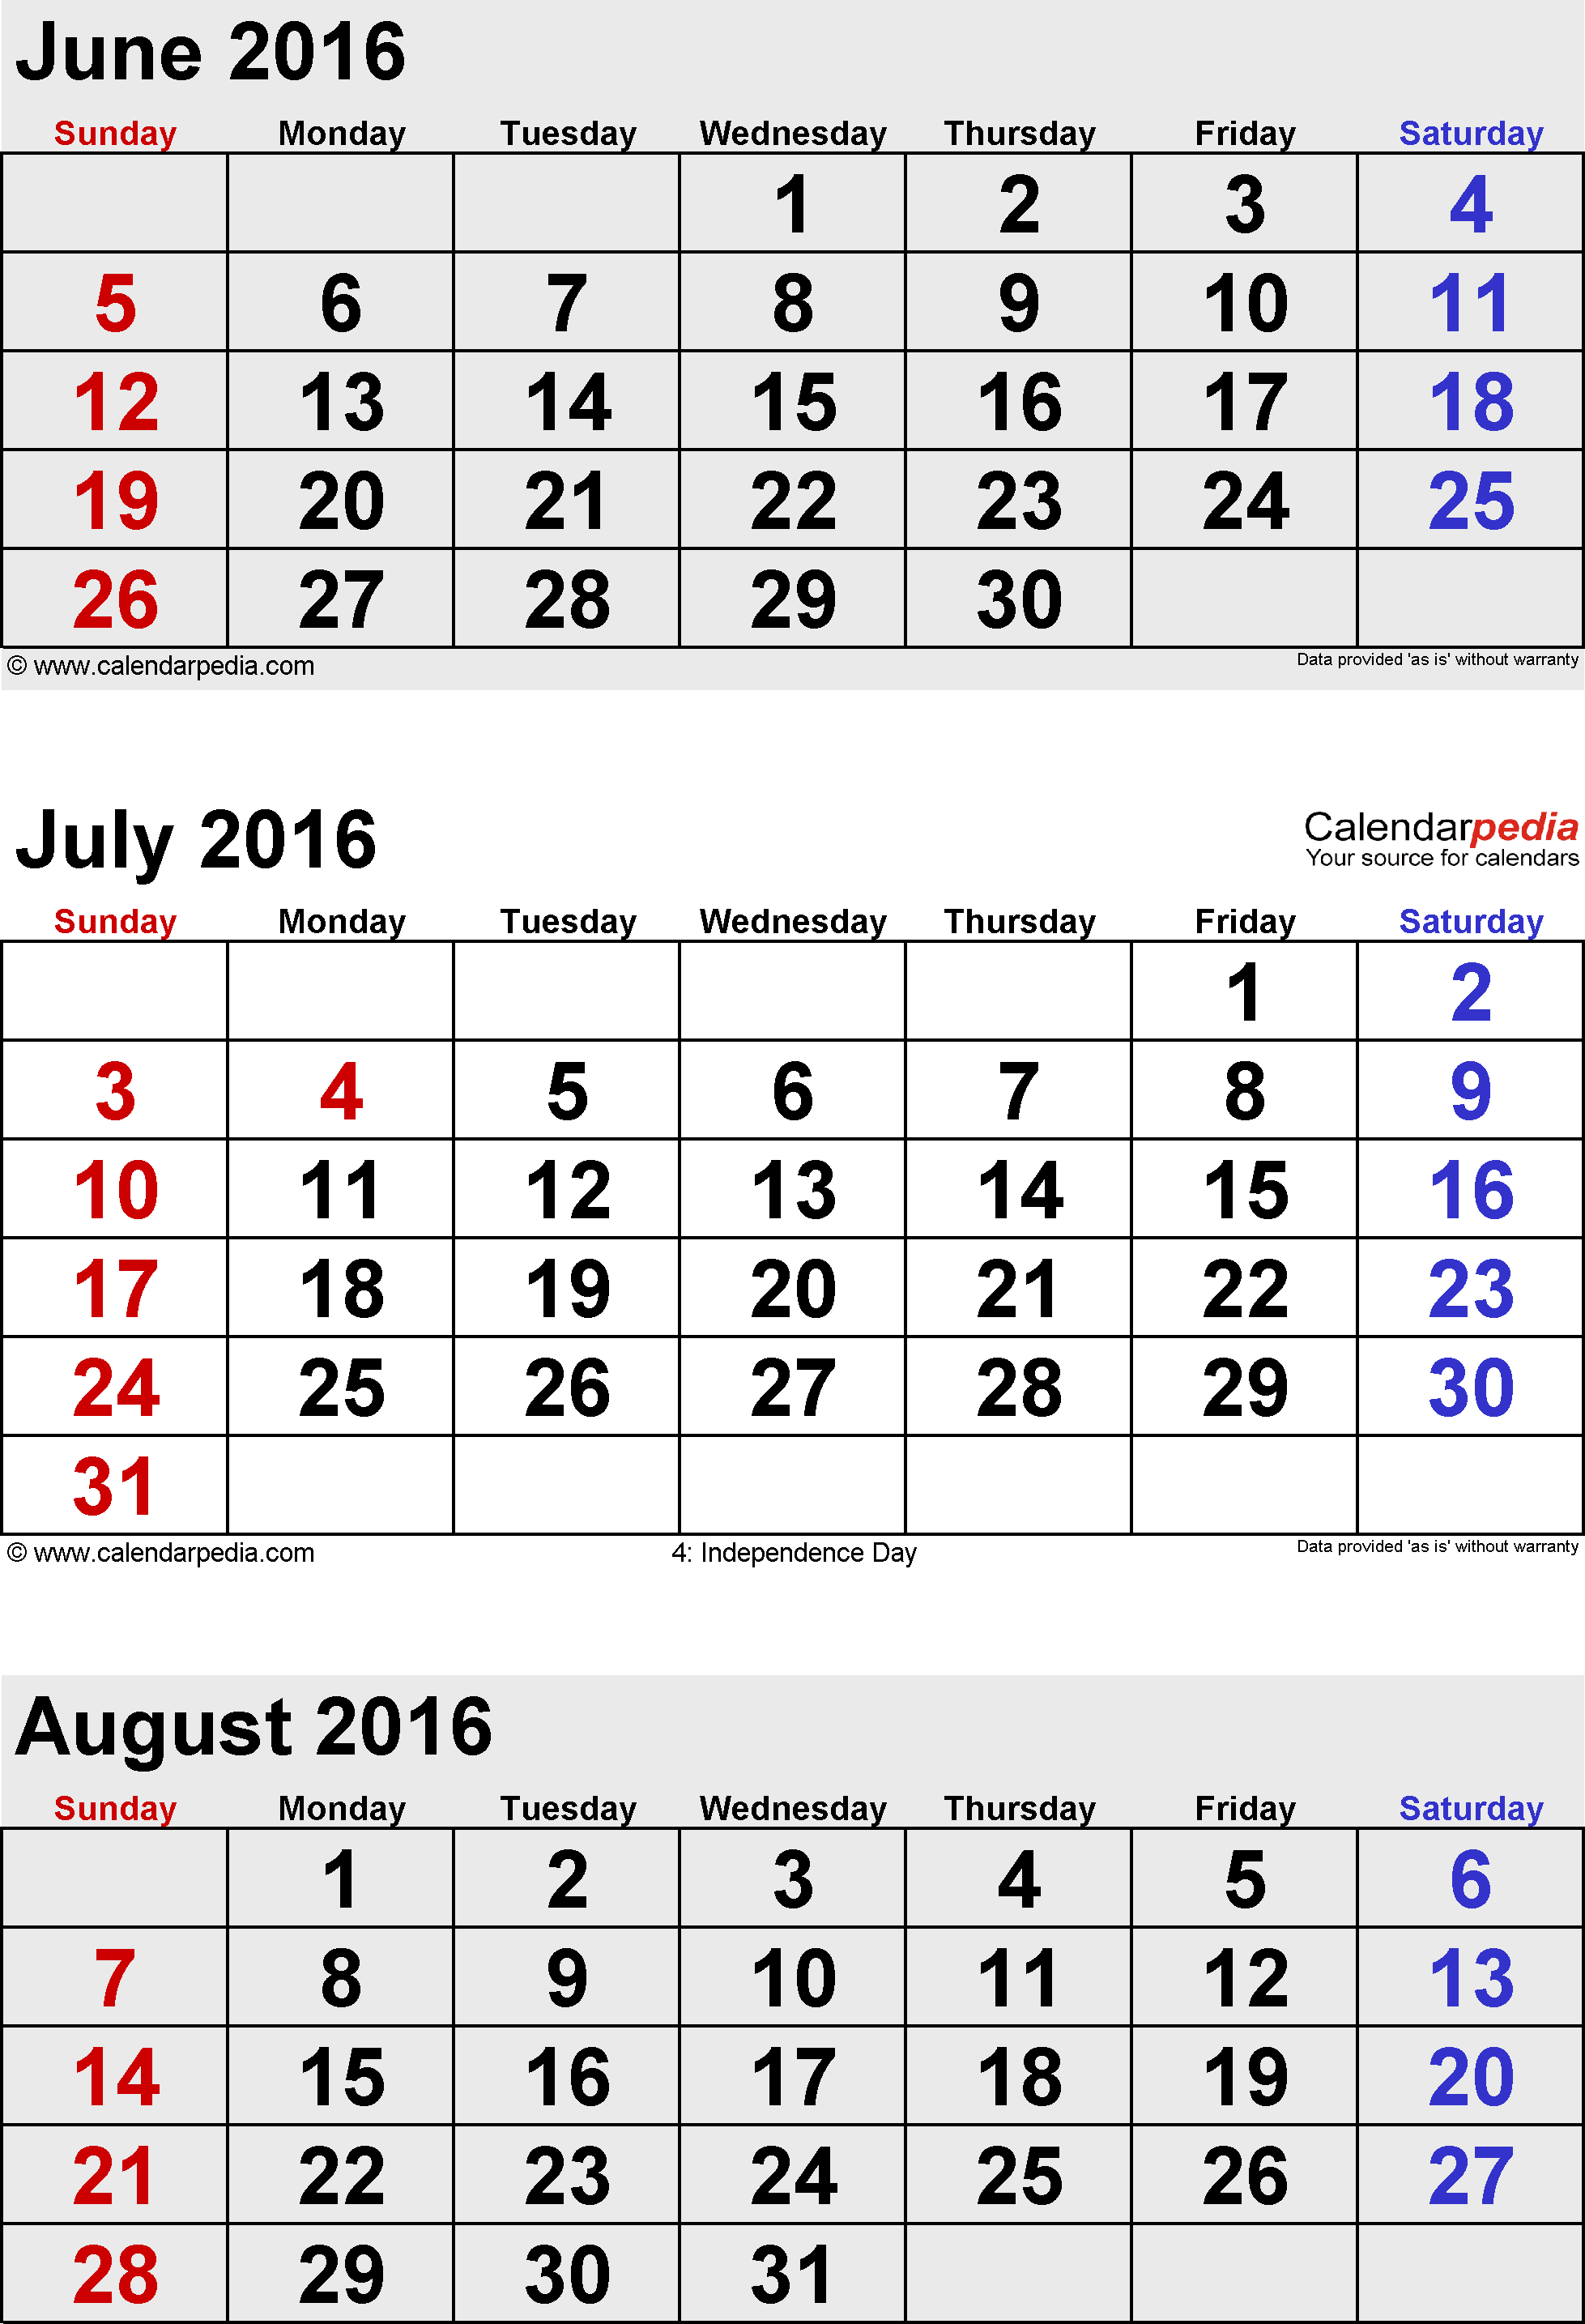 3 months calendar July/August/September 2016 in portrait format